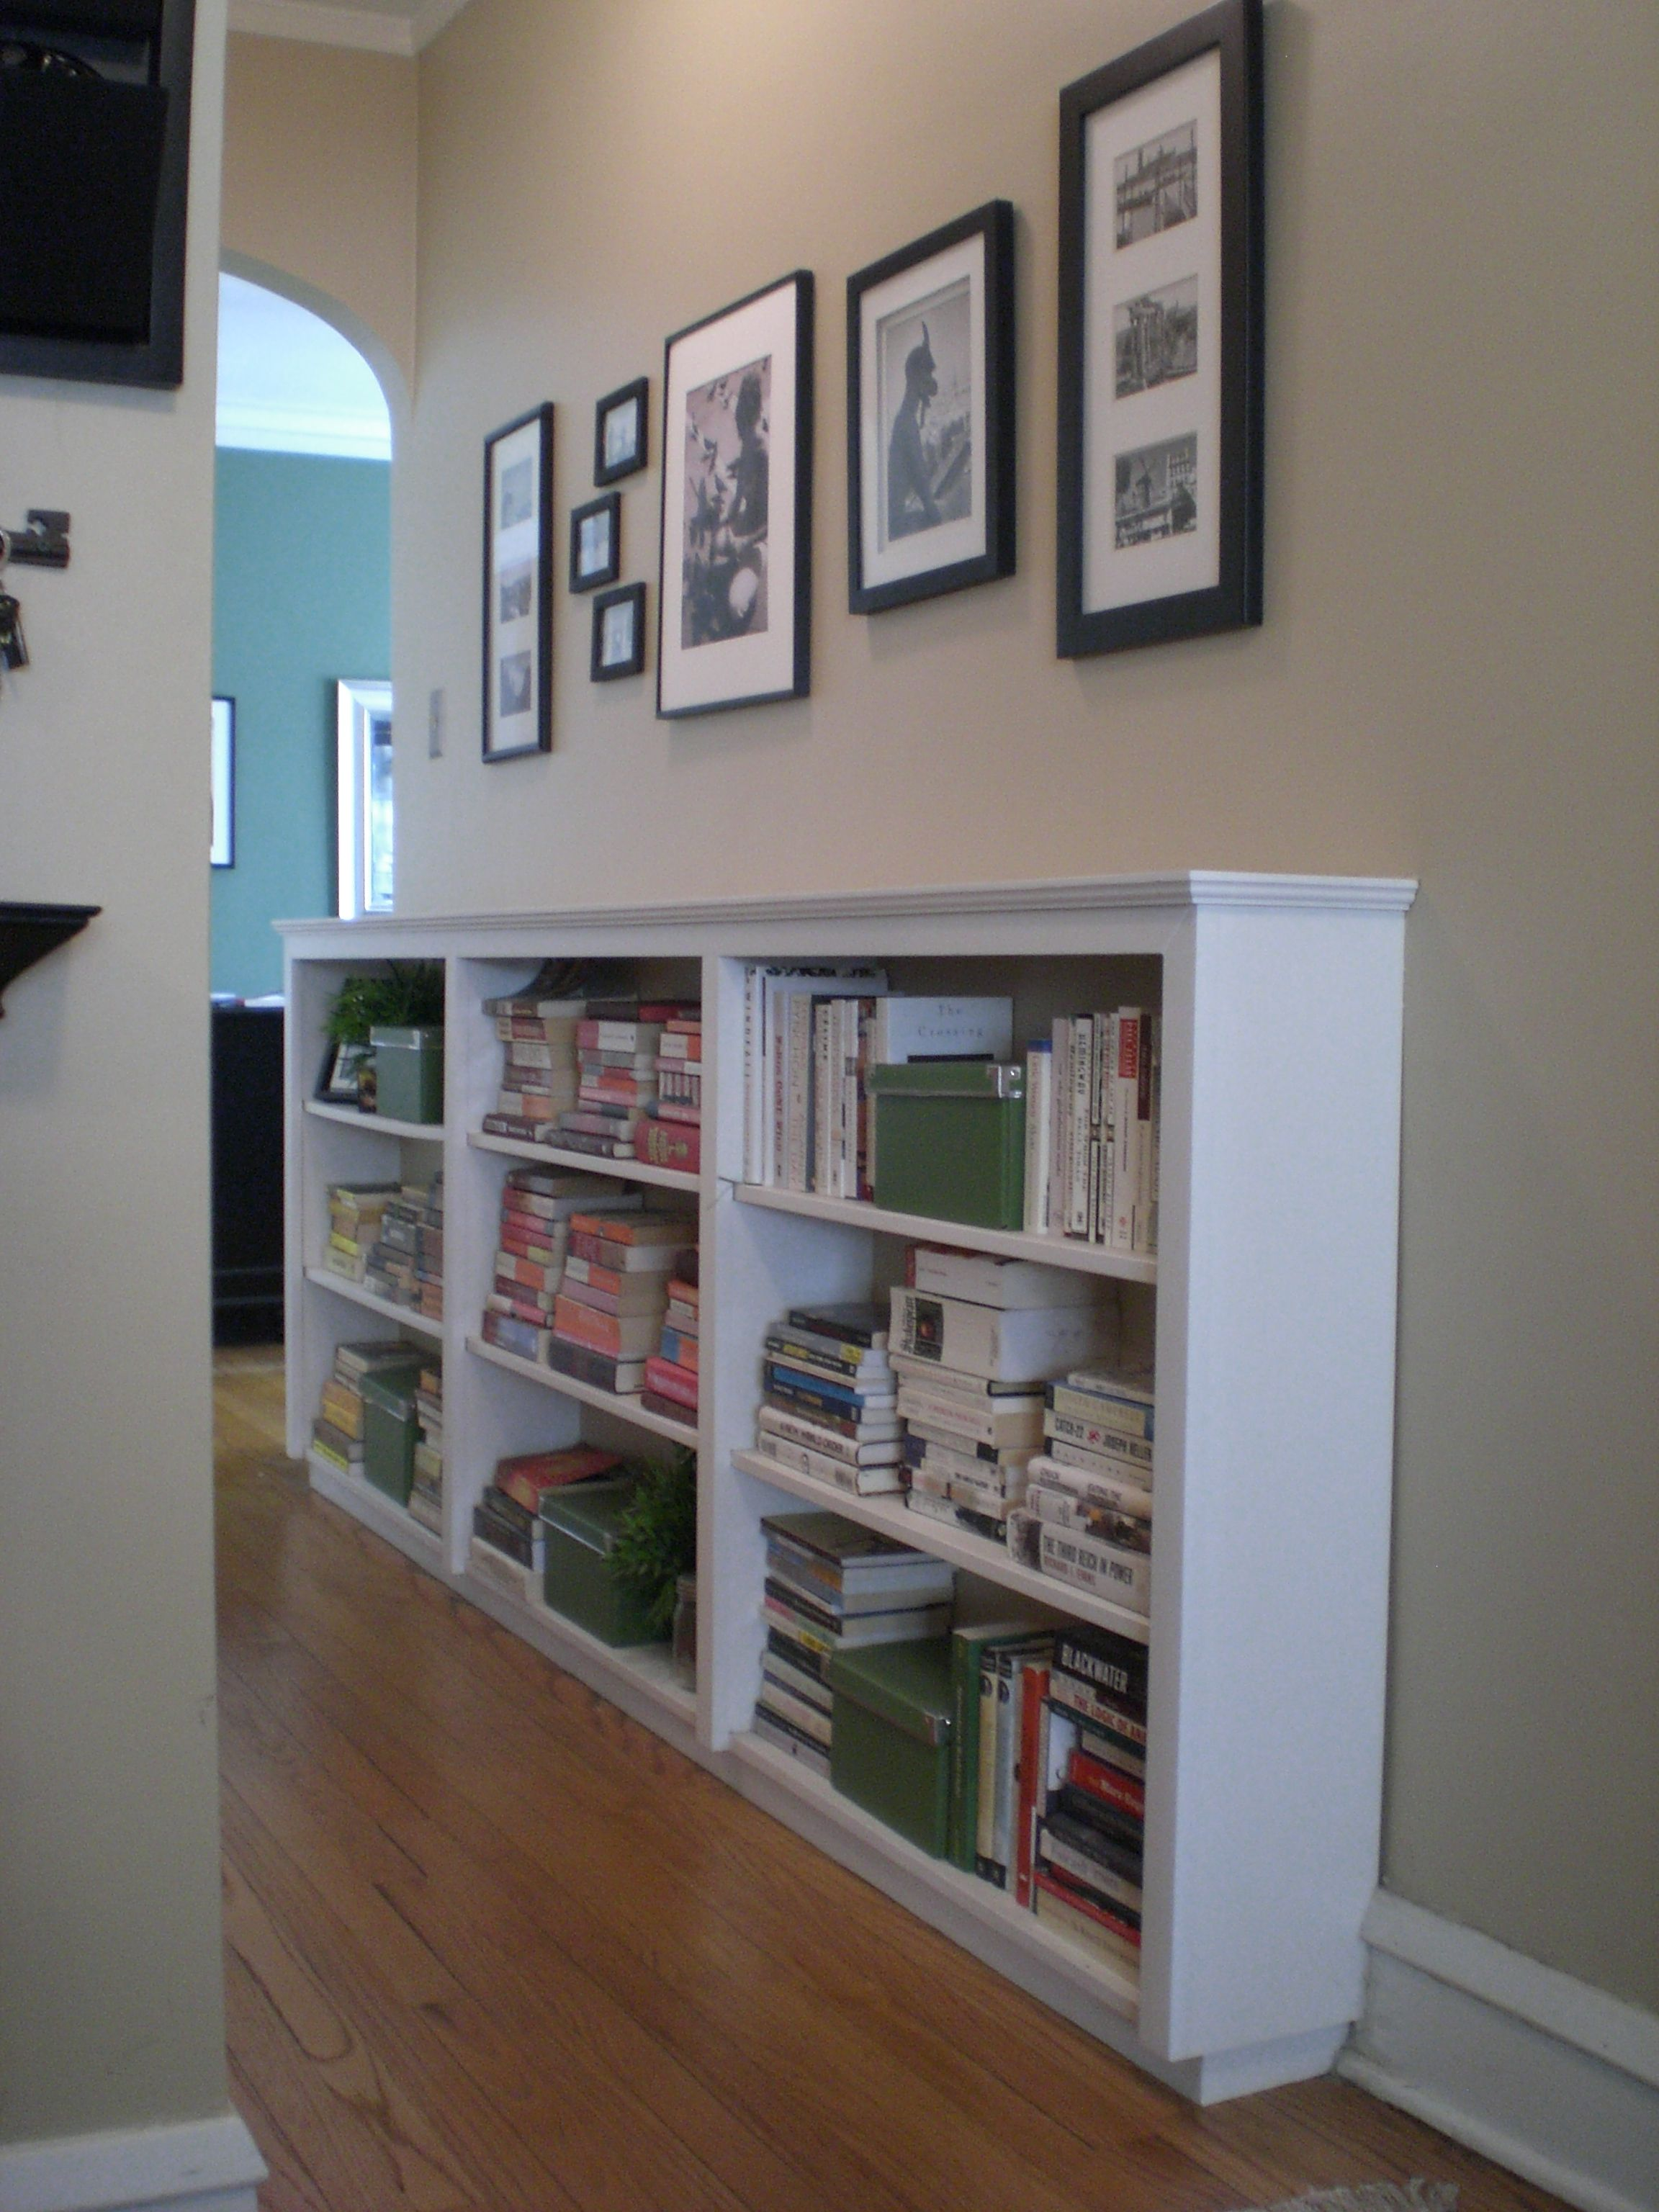 Waist Height Bookshelf In Hall